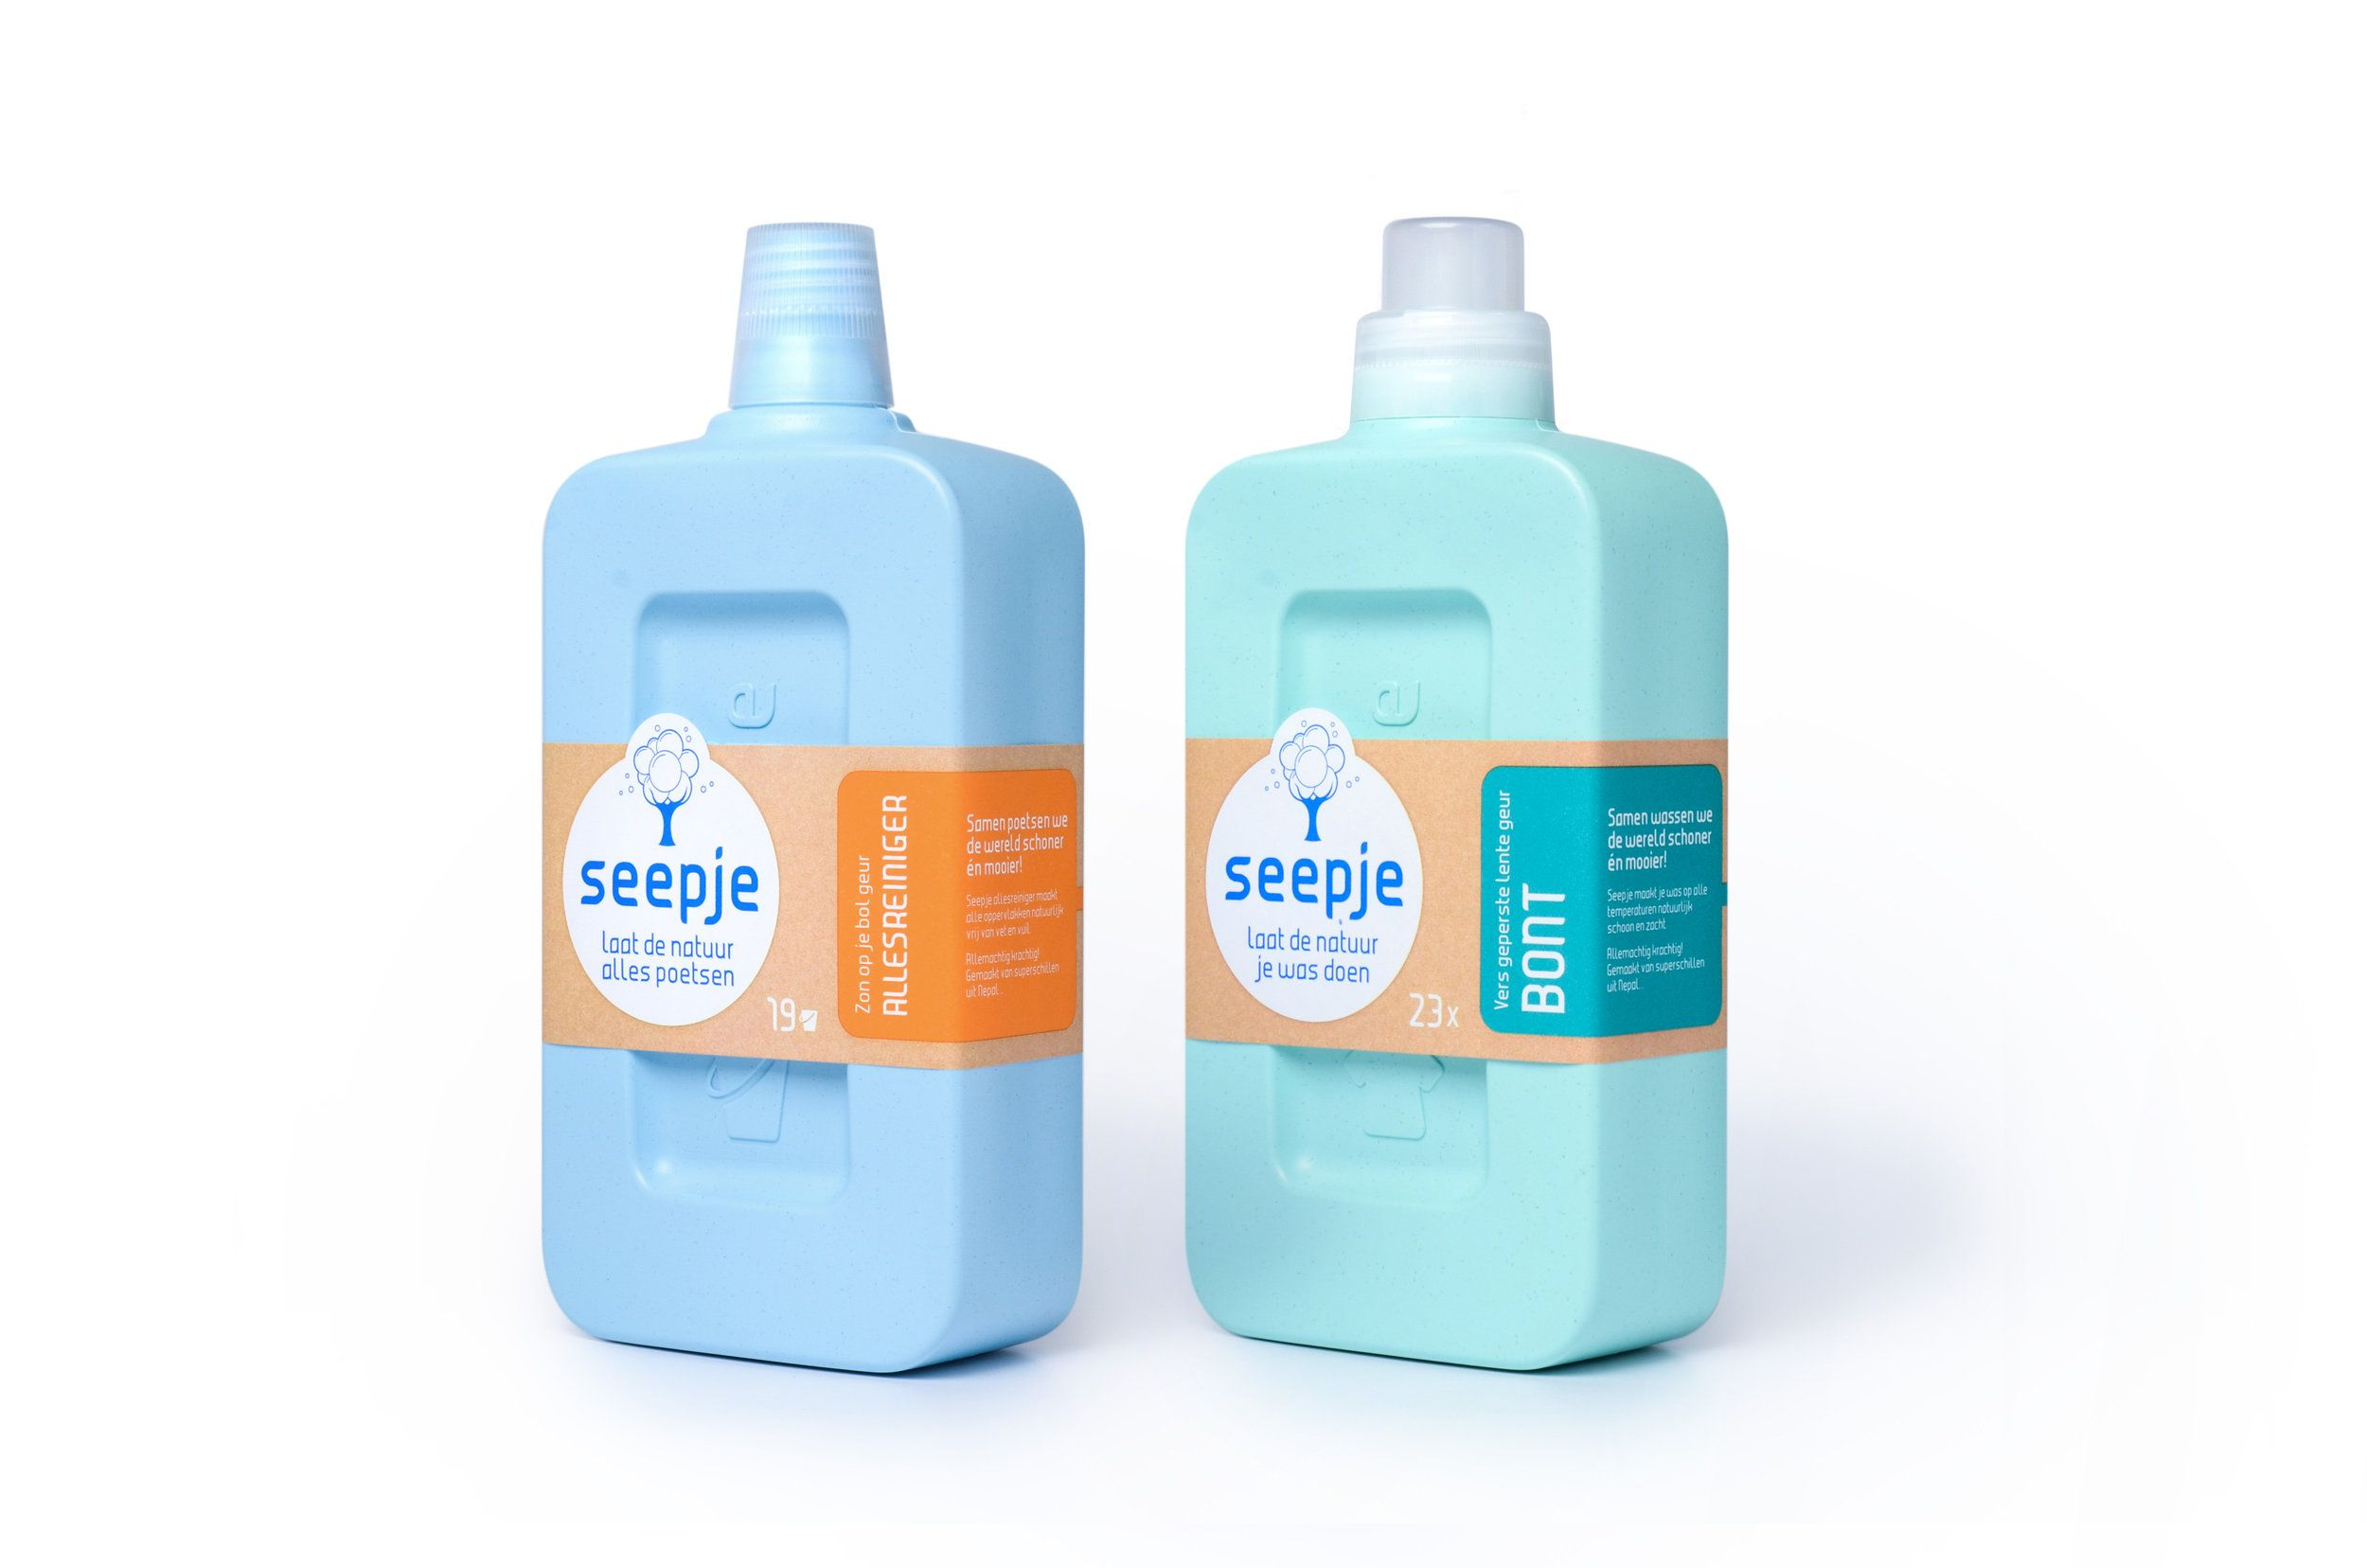 Seepje Is A New Laundry Detergent With Packaging That Repurposes